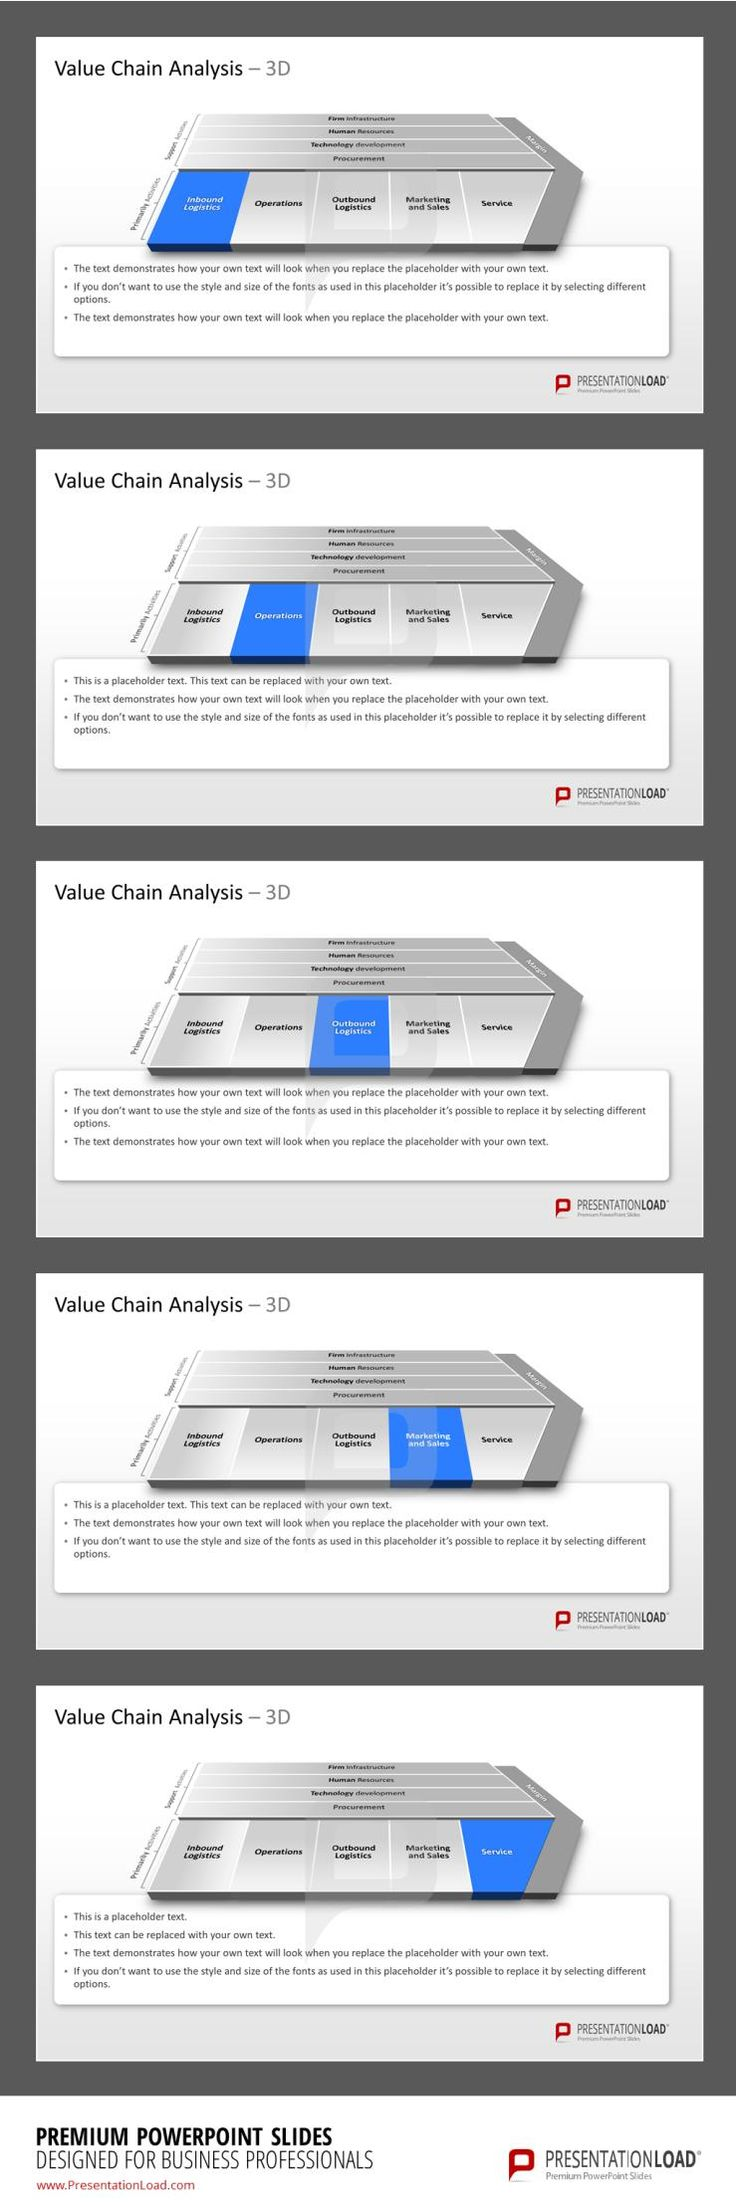 17 best value chain analysis powerpoint templates images on value chain analysis powerpoint template toneelgroepblik Gallery